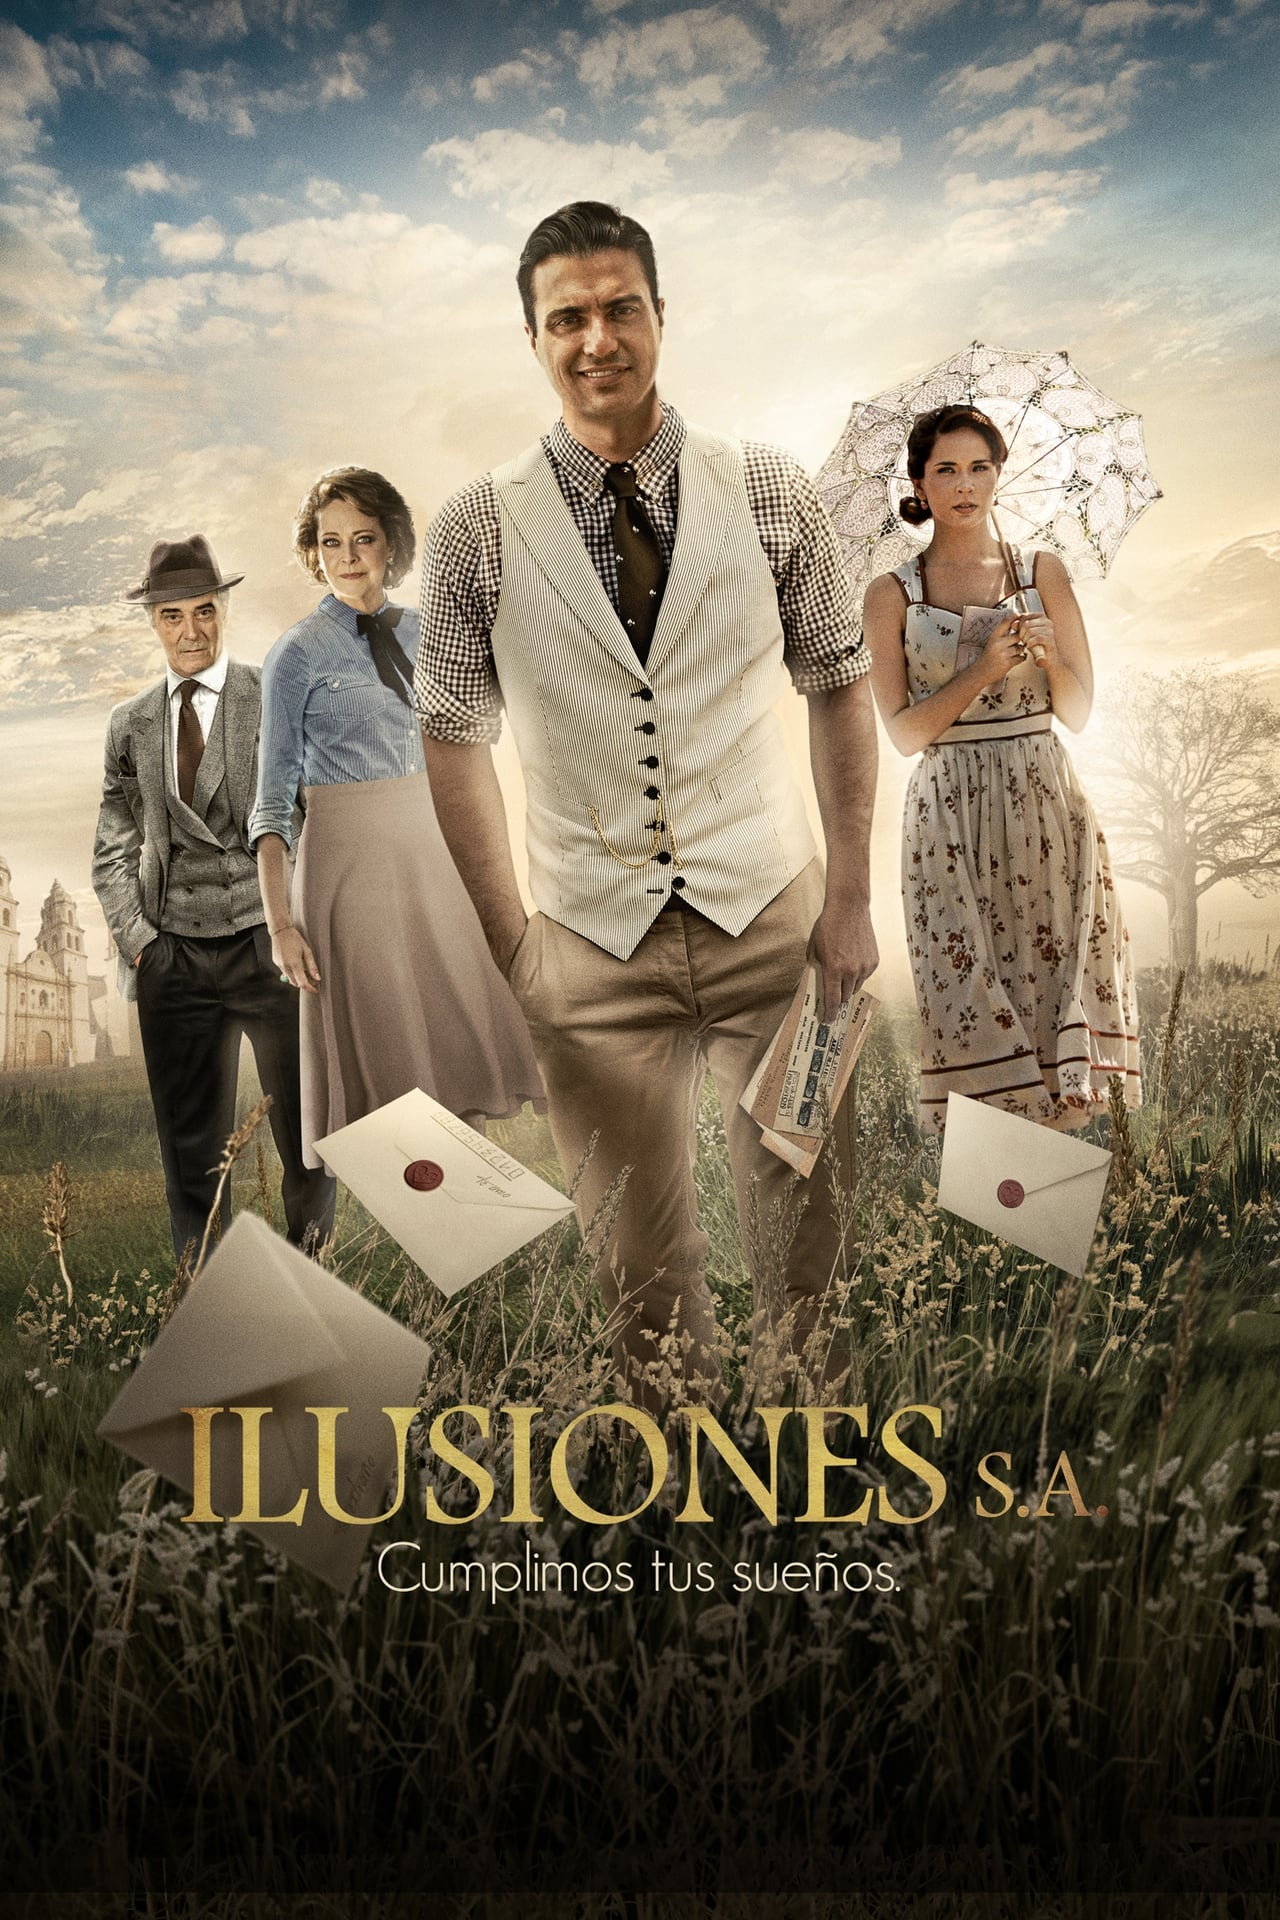 Illusions S.A.